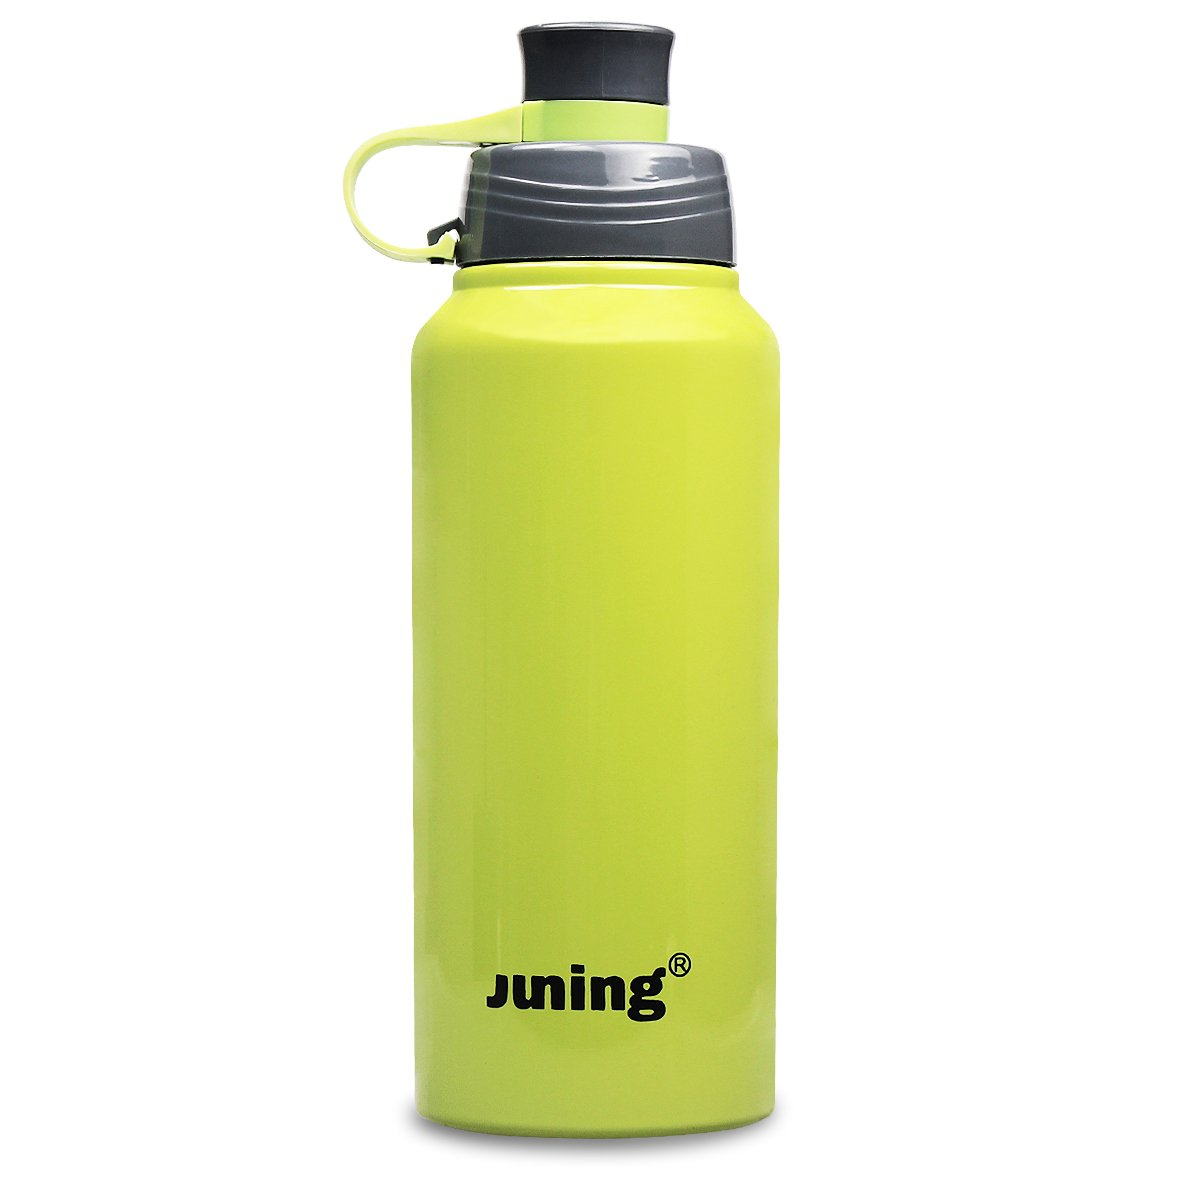 Amazon.com : JUNING Stainless Steel Sports Water Bottle Double Wall ...